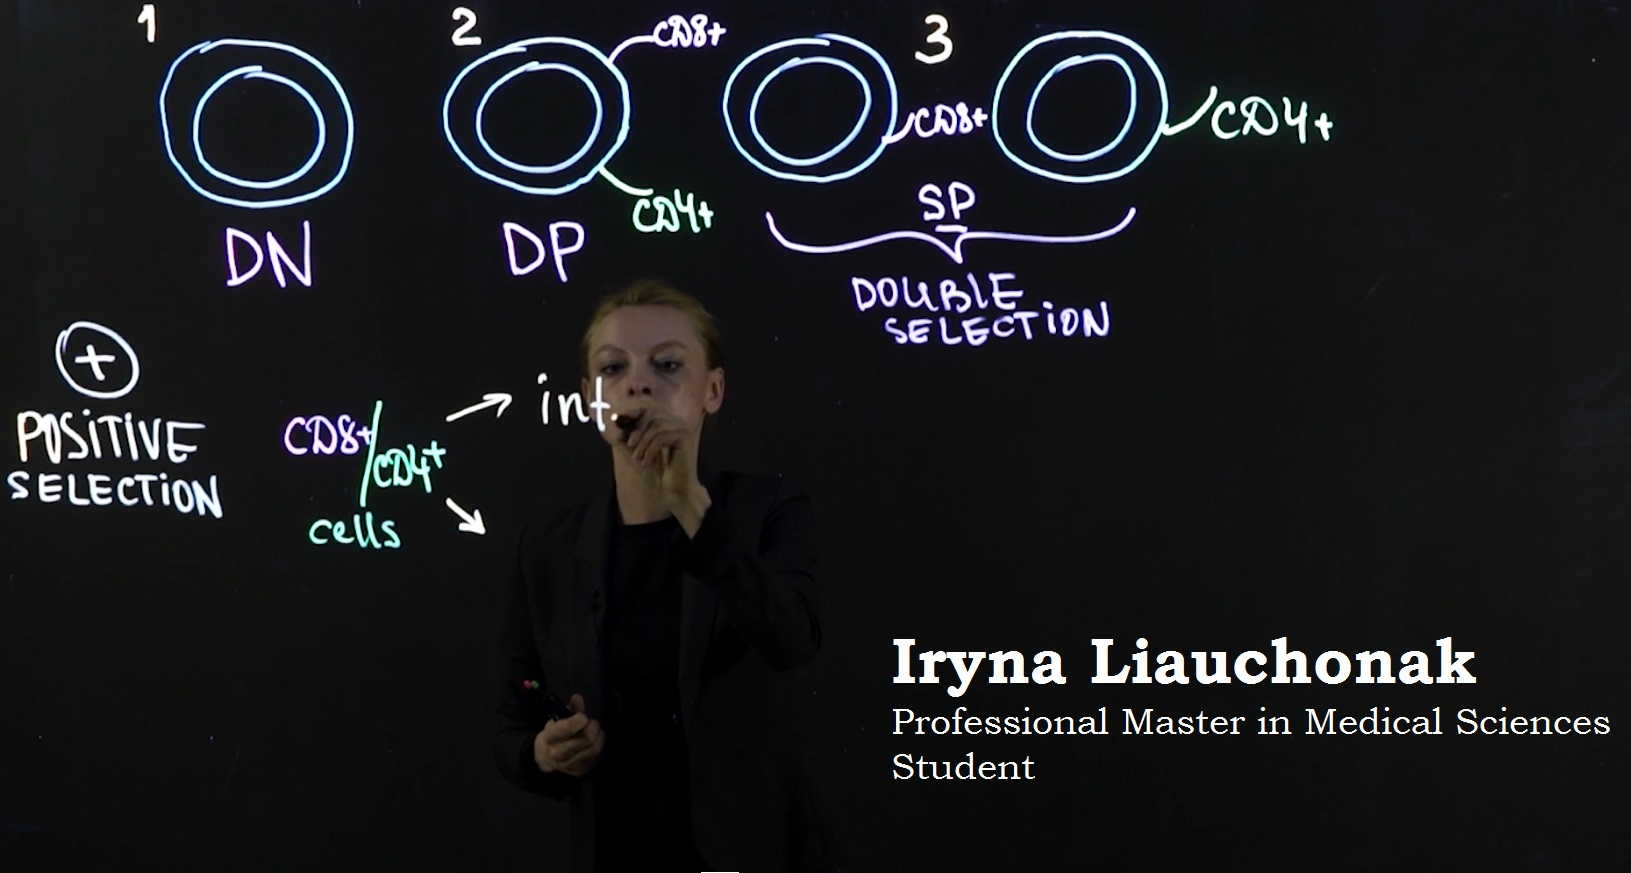 Video Title: Dr. Iryna Liauchonak